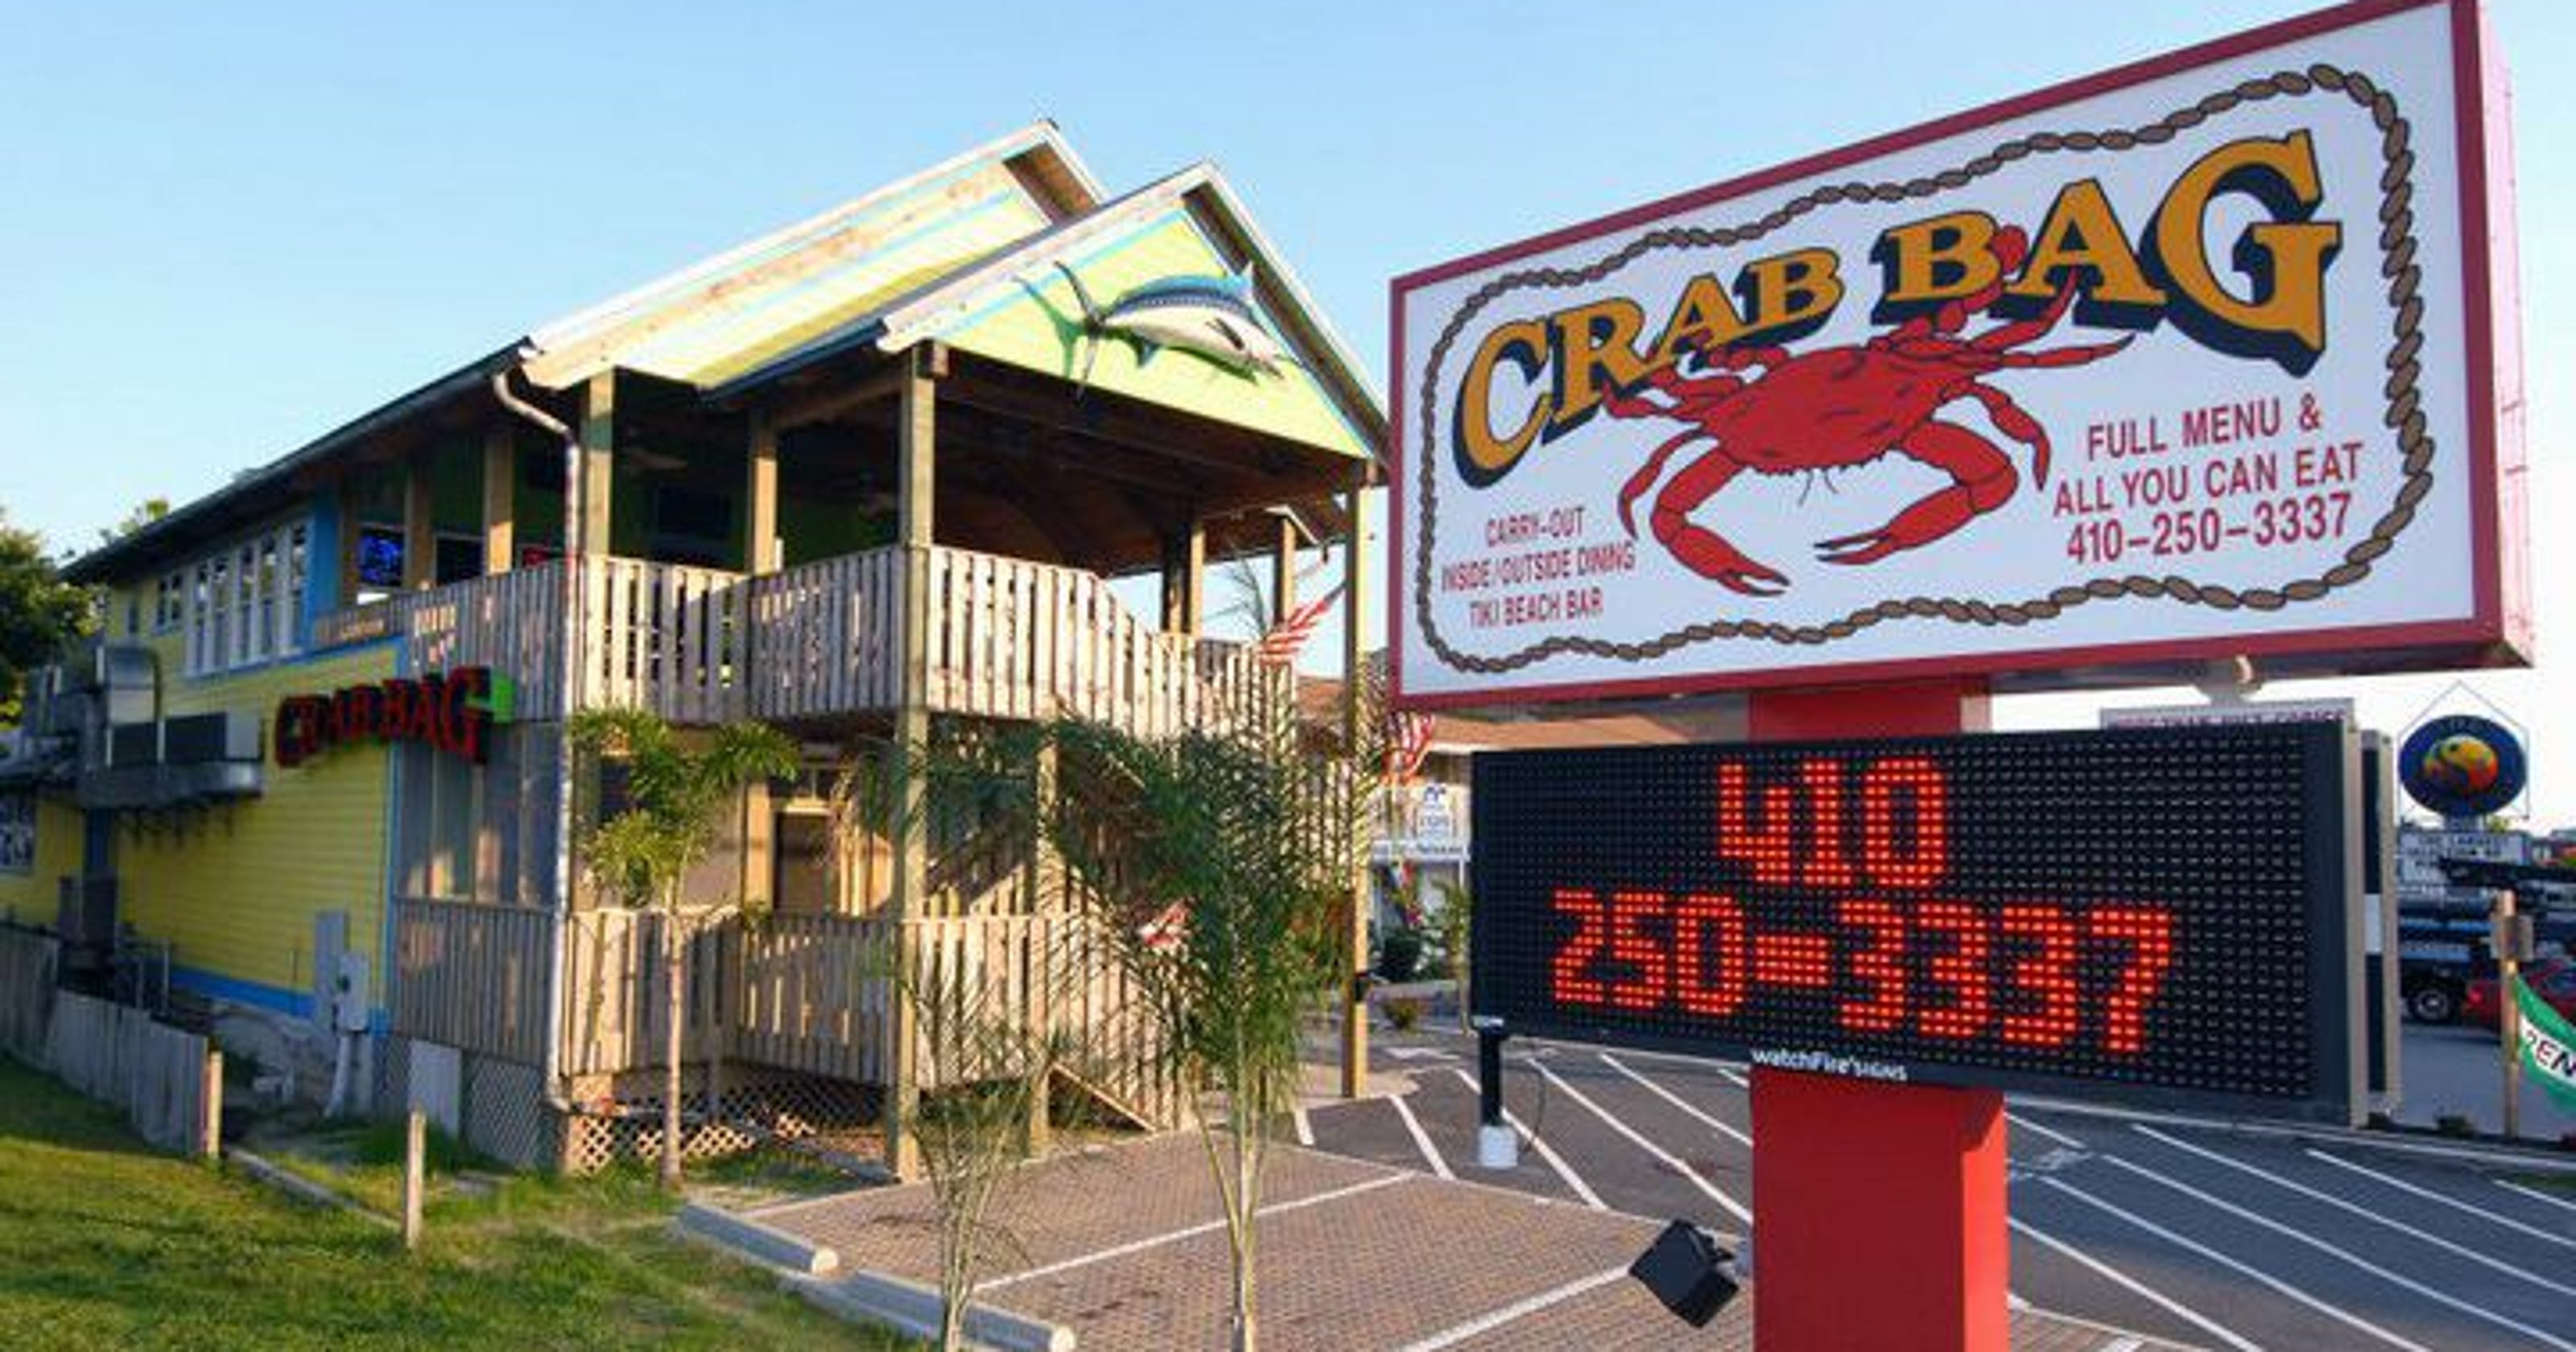 Crab Bag Best All You Can Eat Crabs In Ocean City Maryland